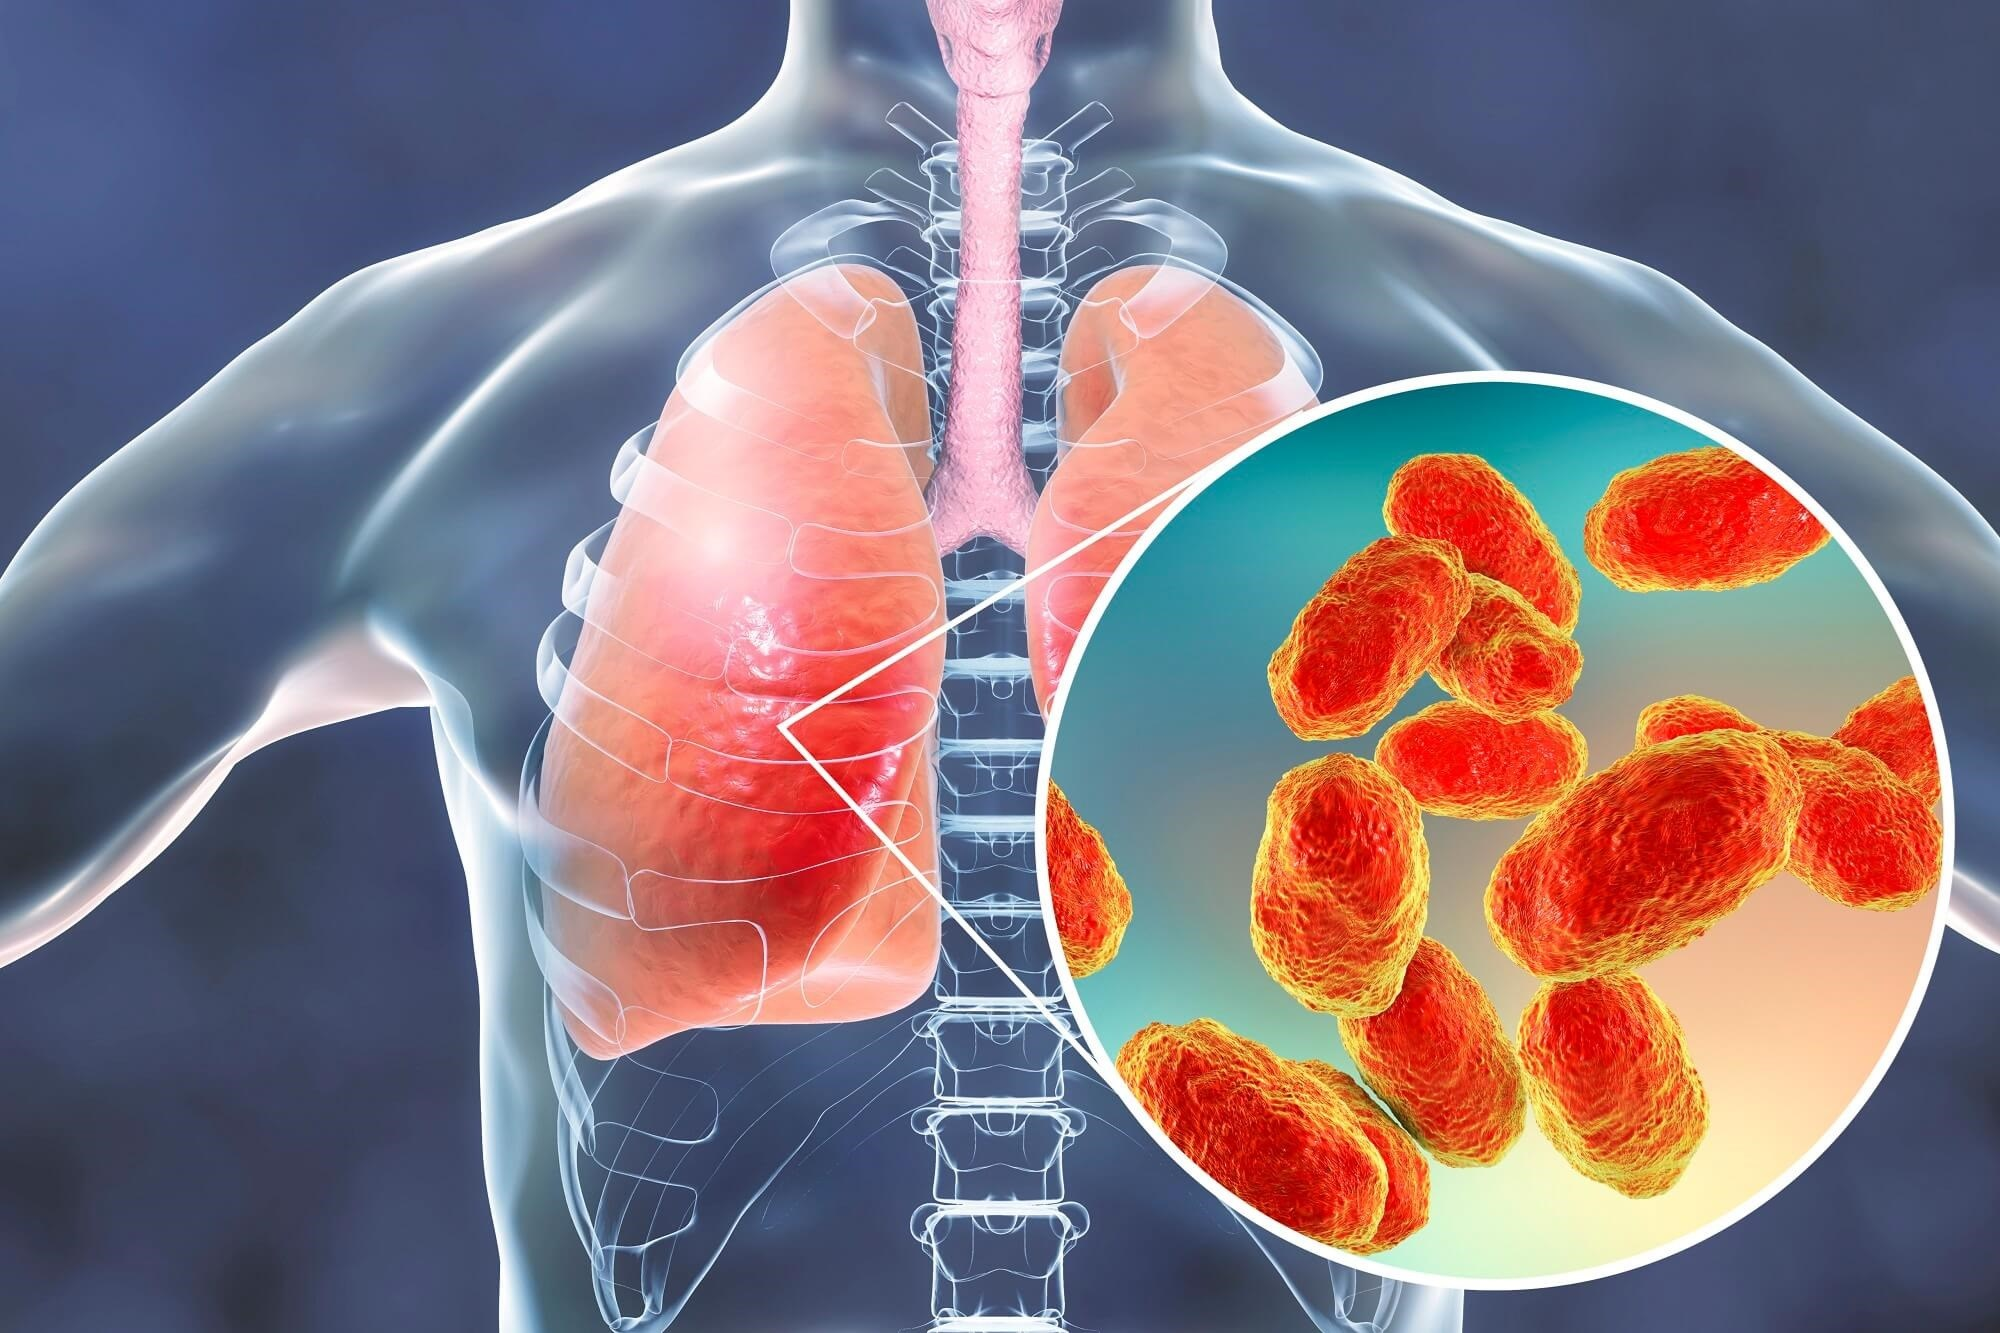 Bacterial Pneumonia Associated With Increased Risk for Future MACE